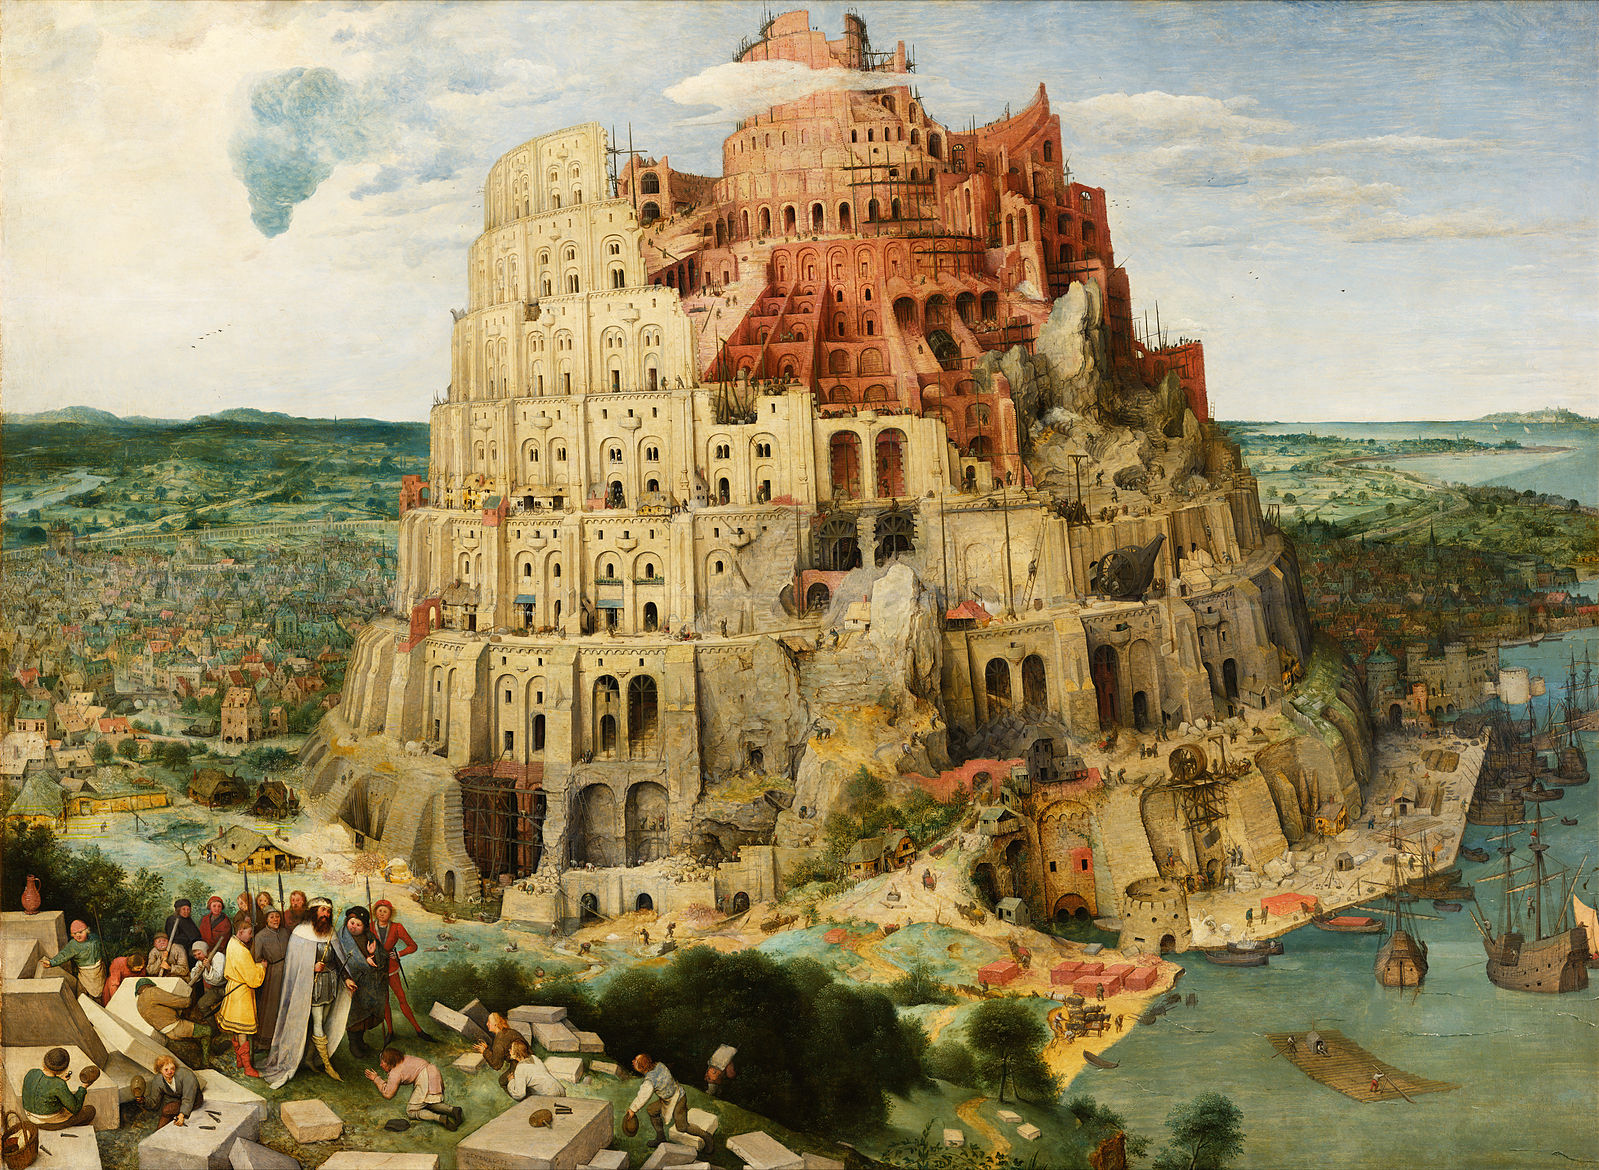 Pieter Bruegel the Elder - The Tower of Babel (SOURCE: Wikipedia)